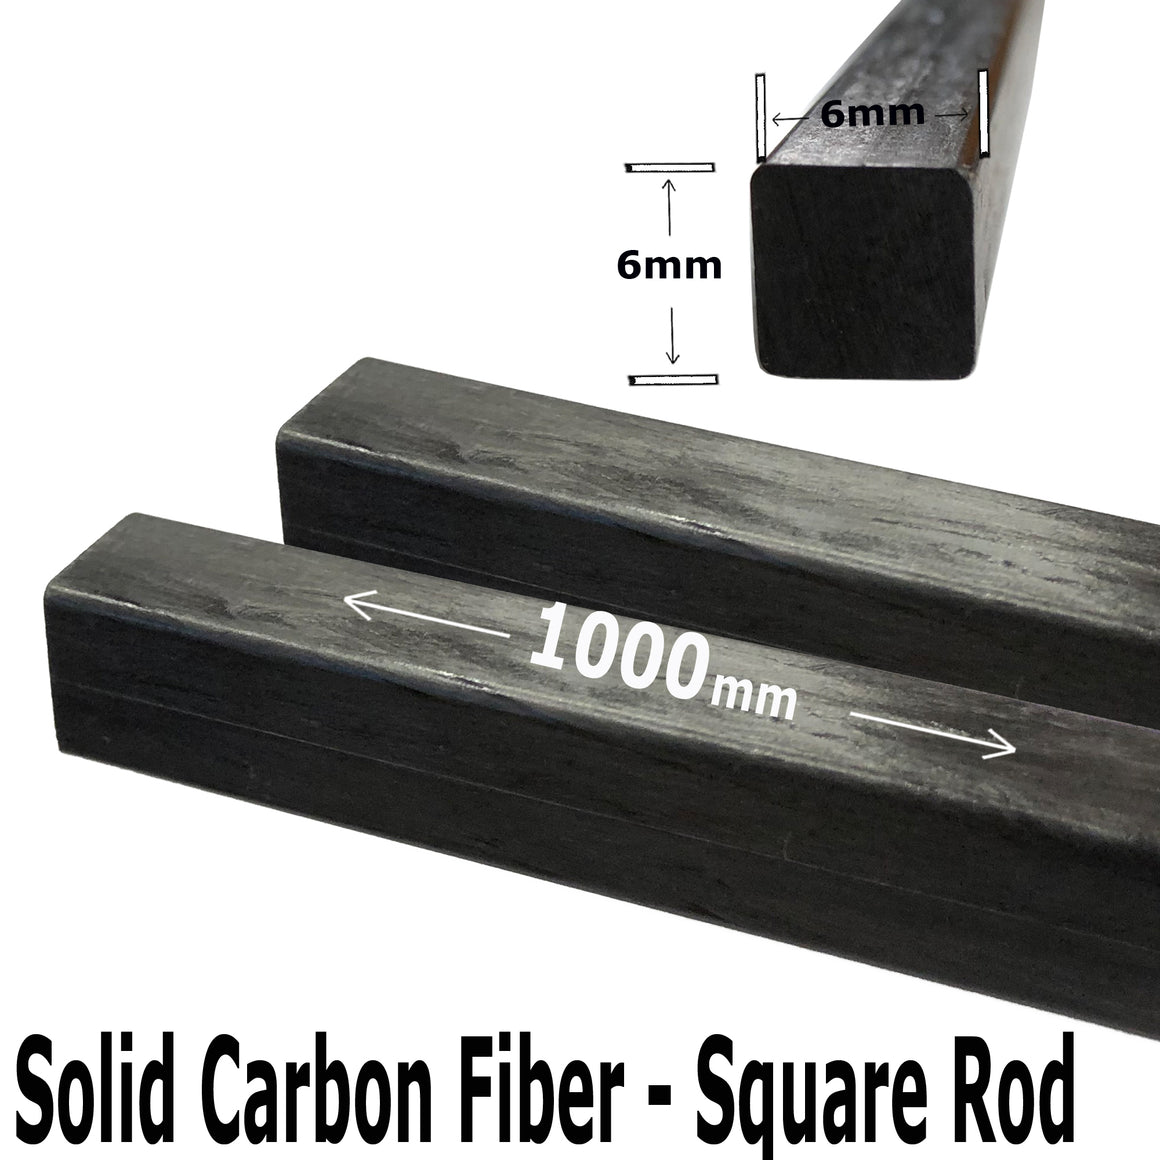 Pultruded Carbon Fiber Square Rods - 6mm x 6mm x 1000mm - High Strength Solid Rods